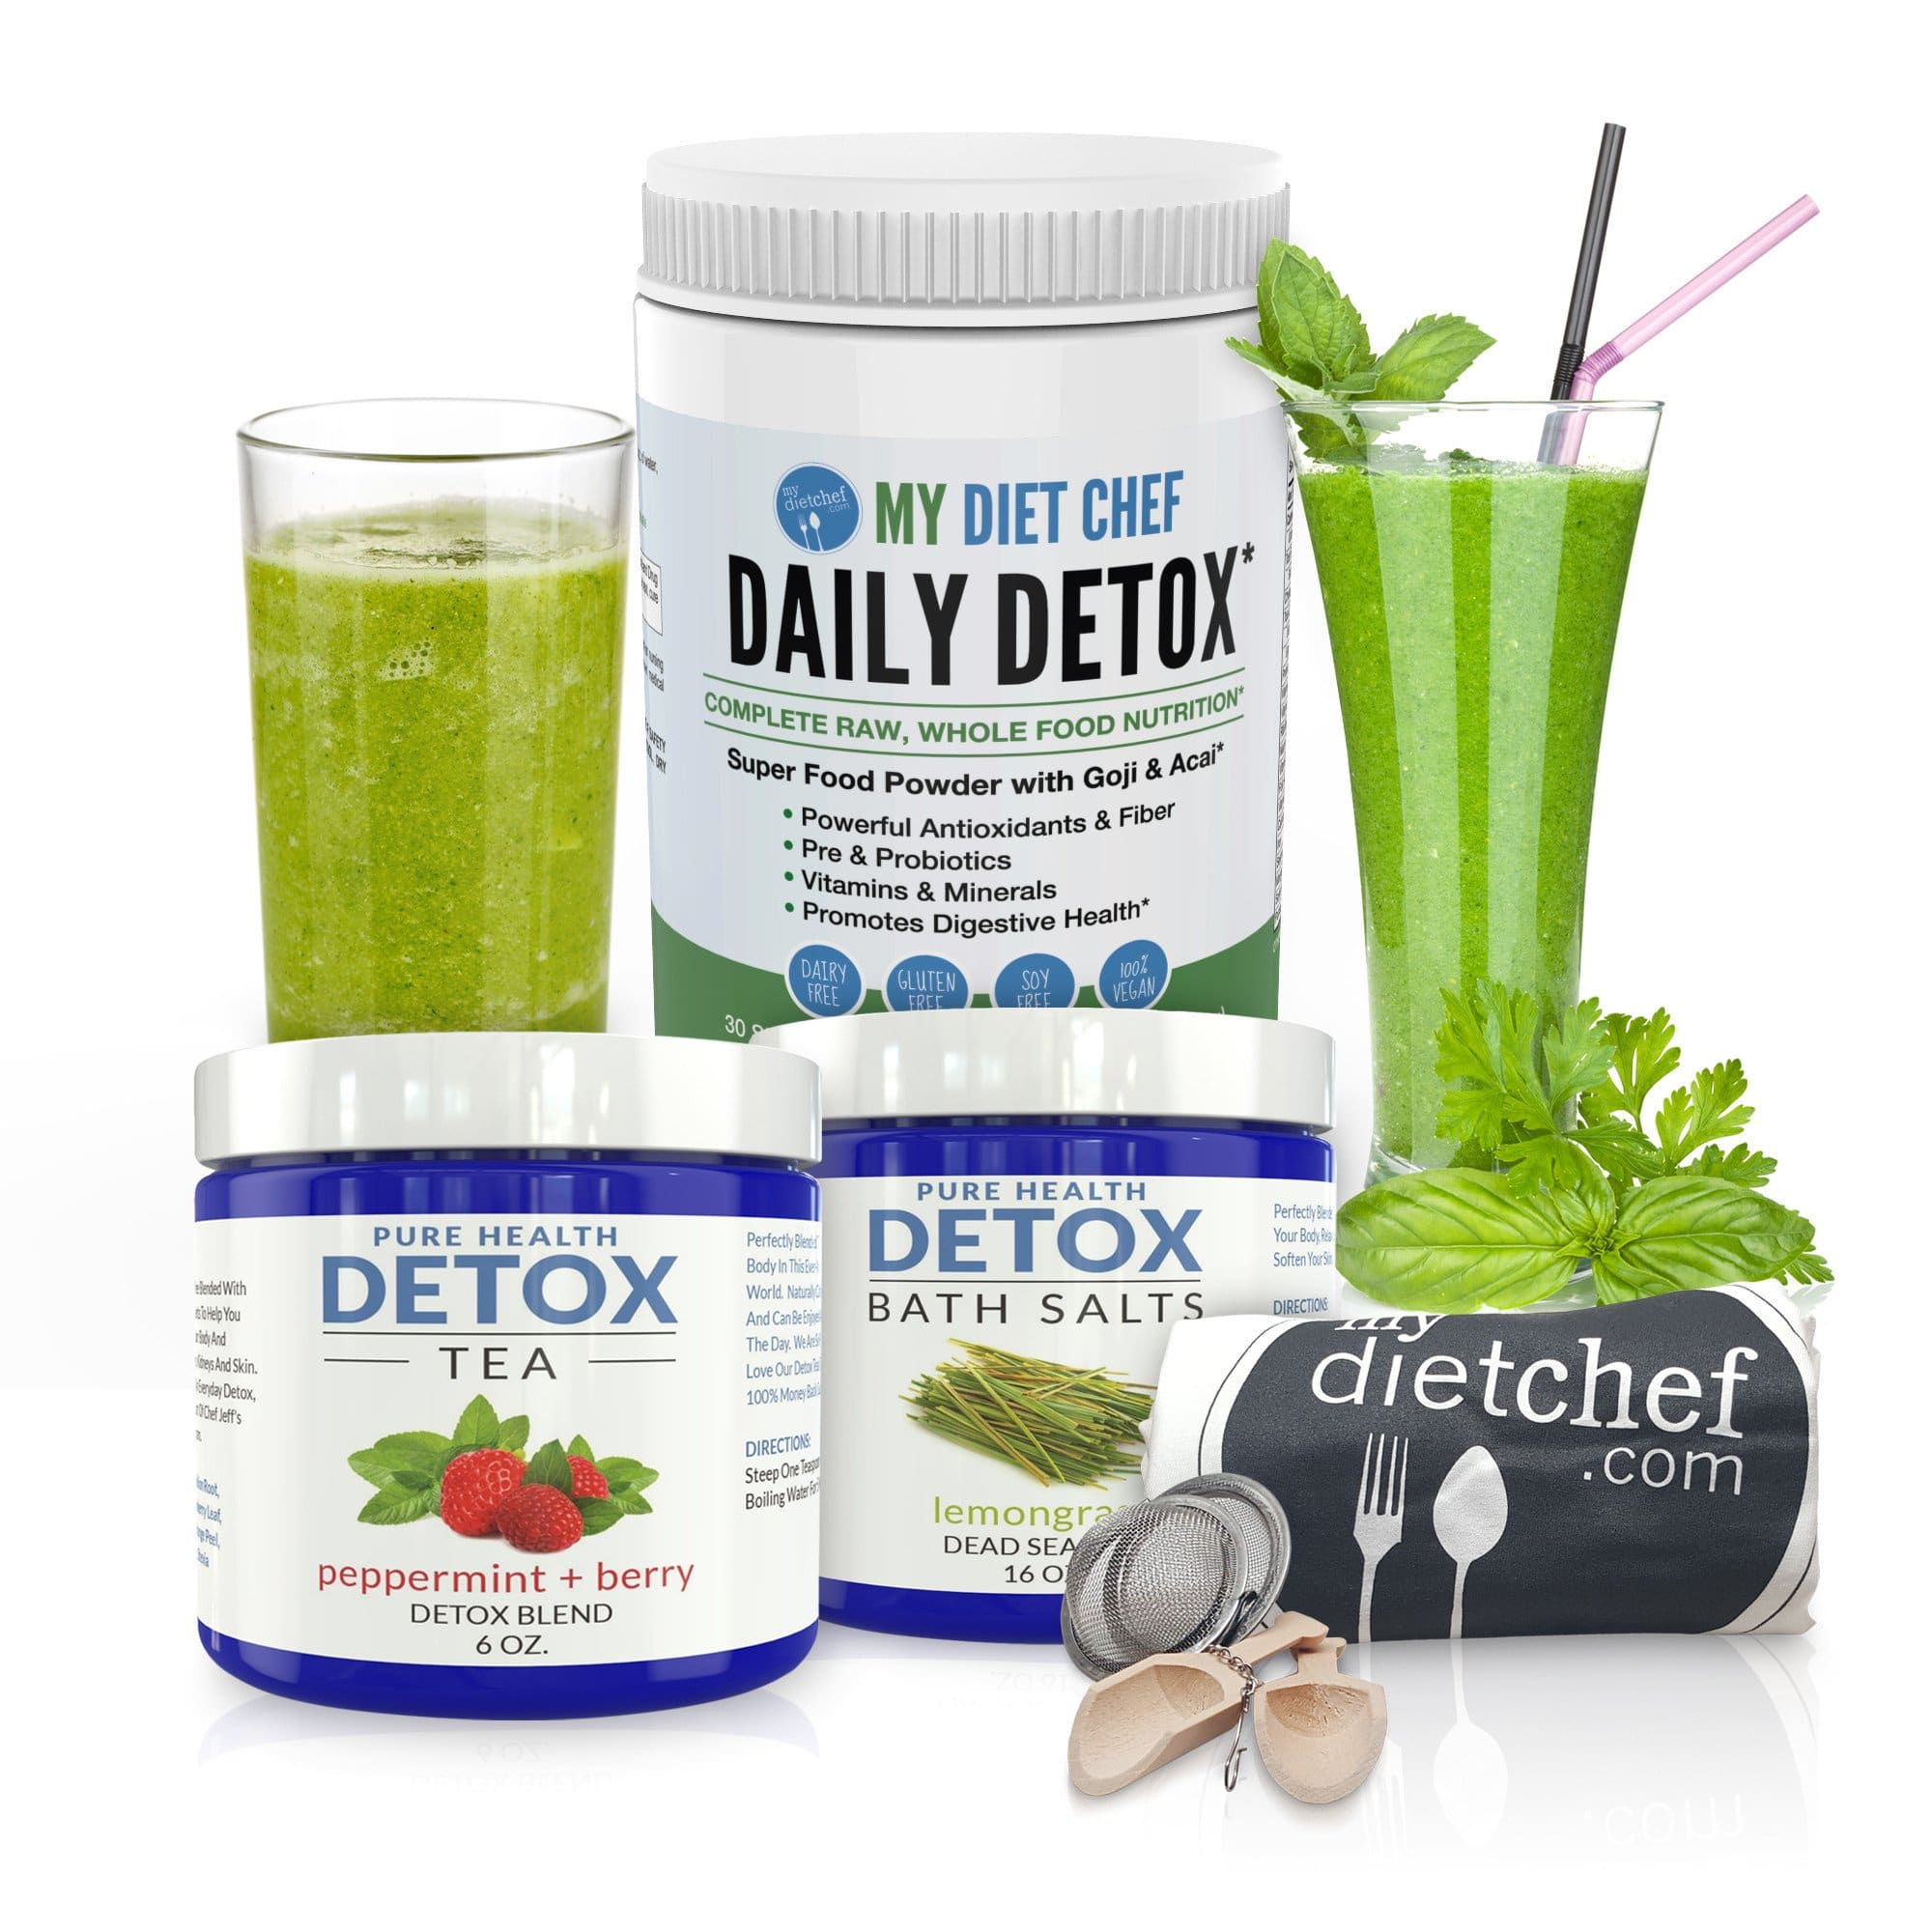 Complete Two Week Health Detox Program for $49.99  (78% off) by My Diet Chef